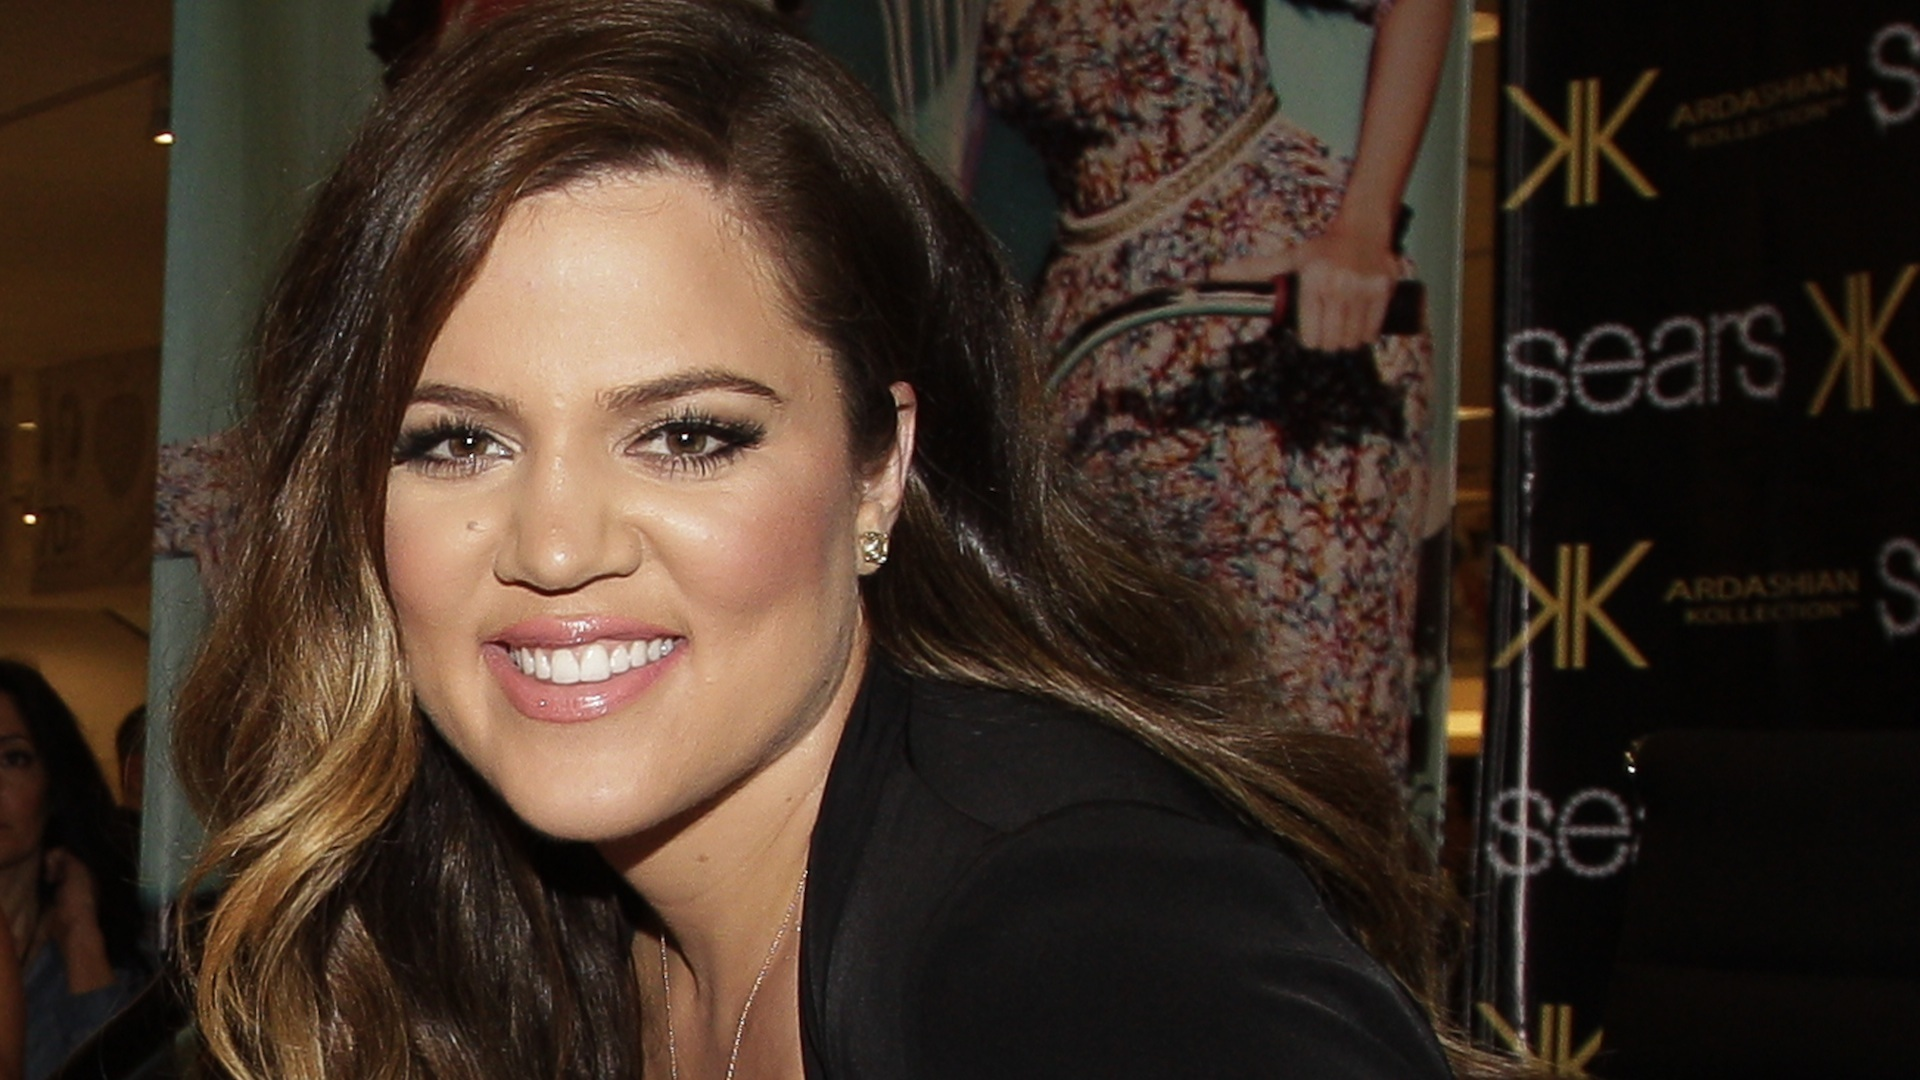 HOUSTON-MAY-Khloe-Kardashian-Odom-signs-autographs-for-fans-during-a-Sears-In-Store-Appearanc-wallpaper-wp3406960